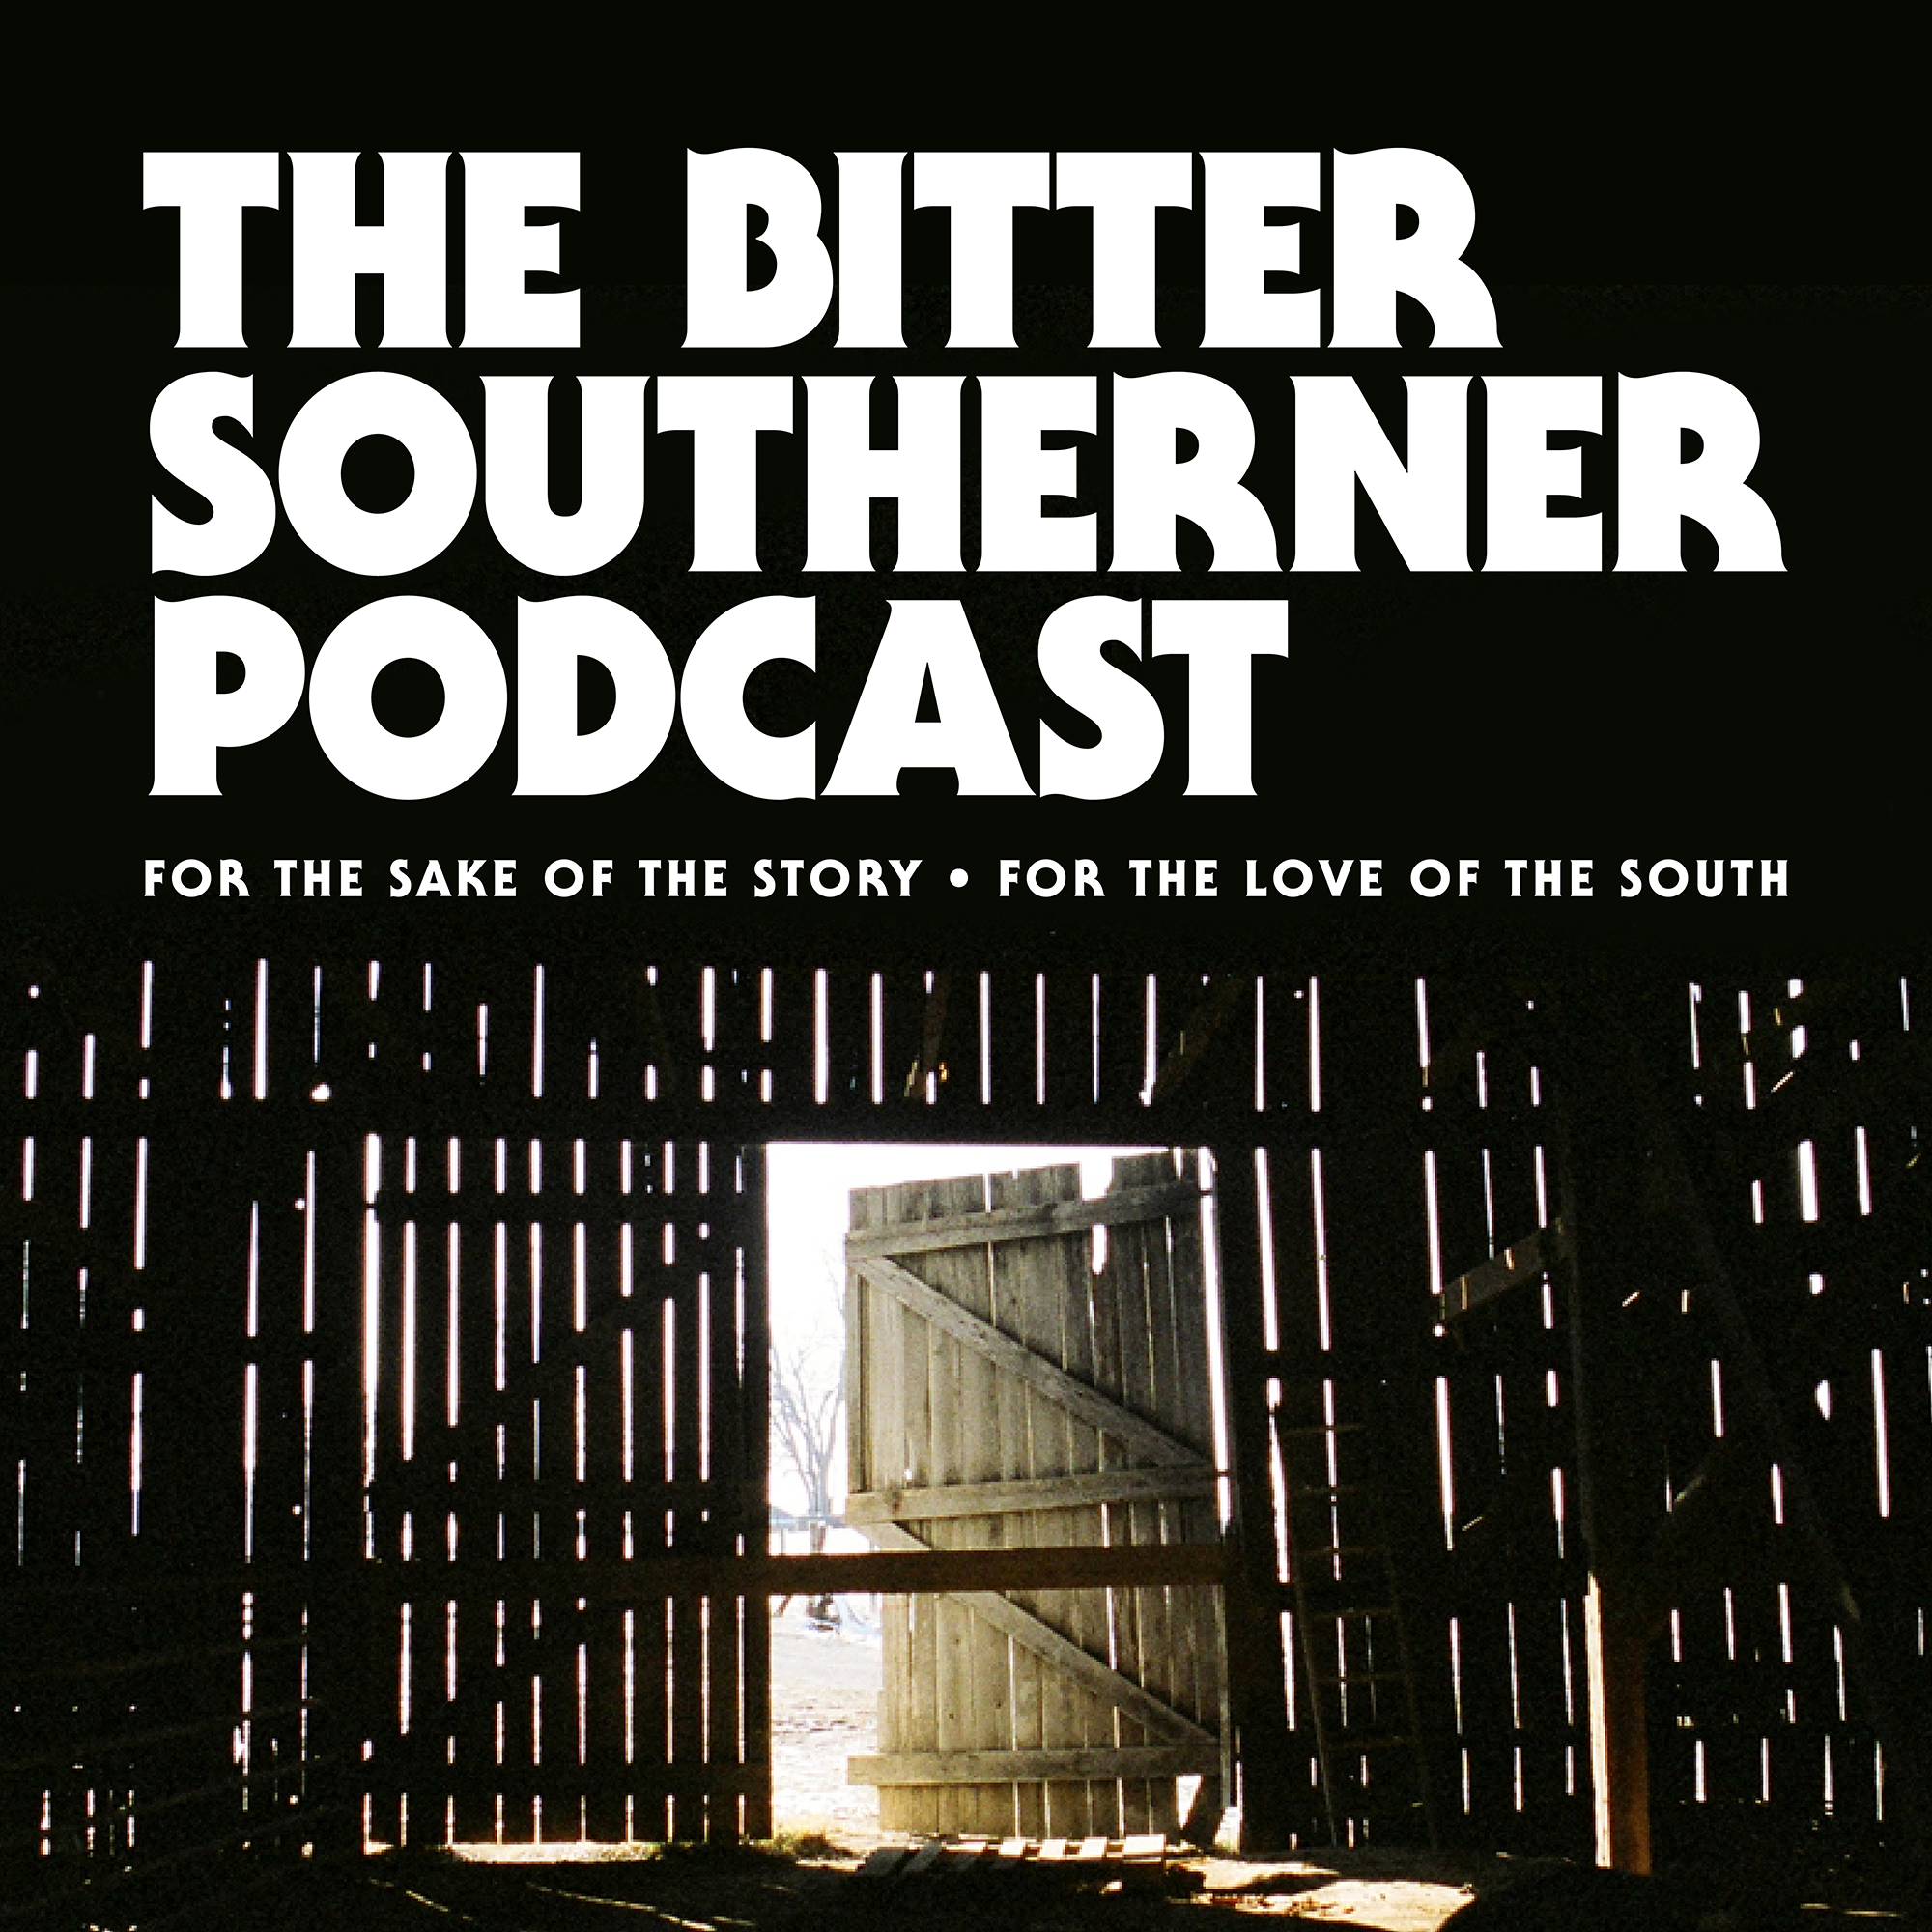 The Bitter Southerner Podcast, hosted by Bitter Southerner magazine editor Chuck Reece, explores the culture and history of the American South.